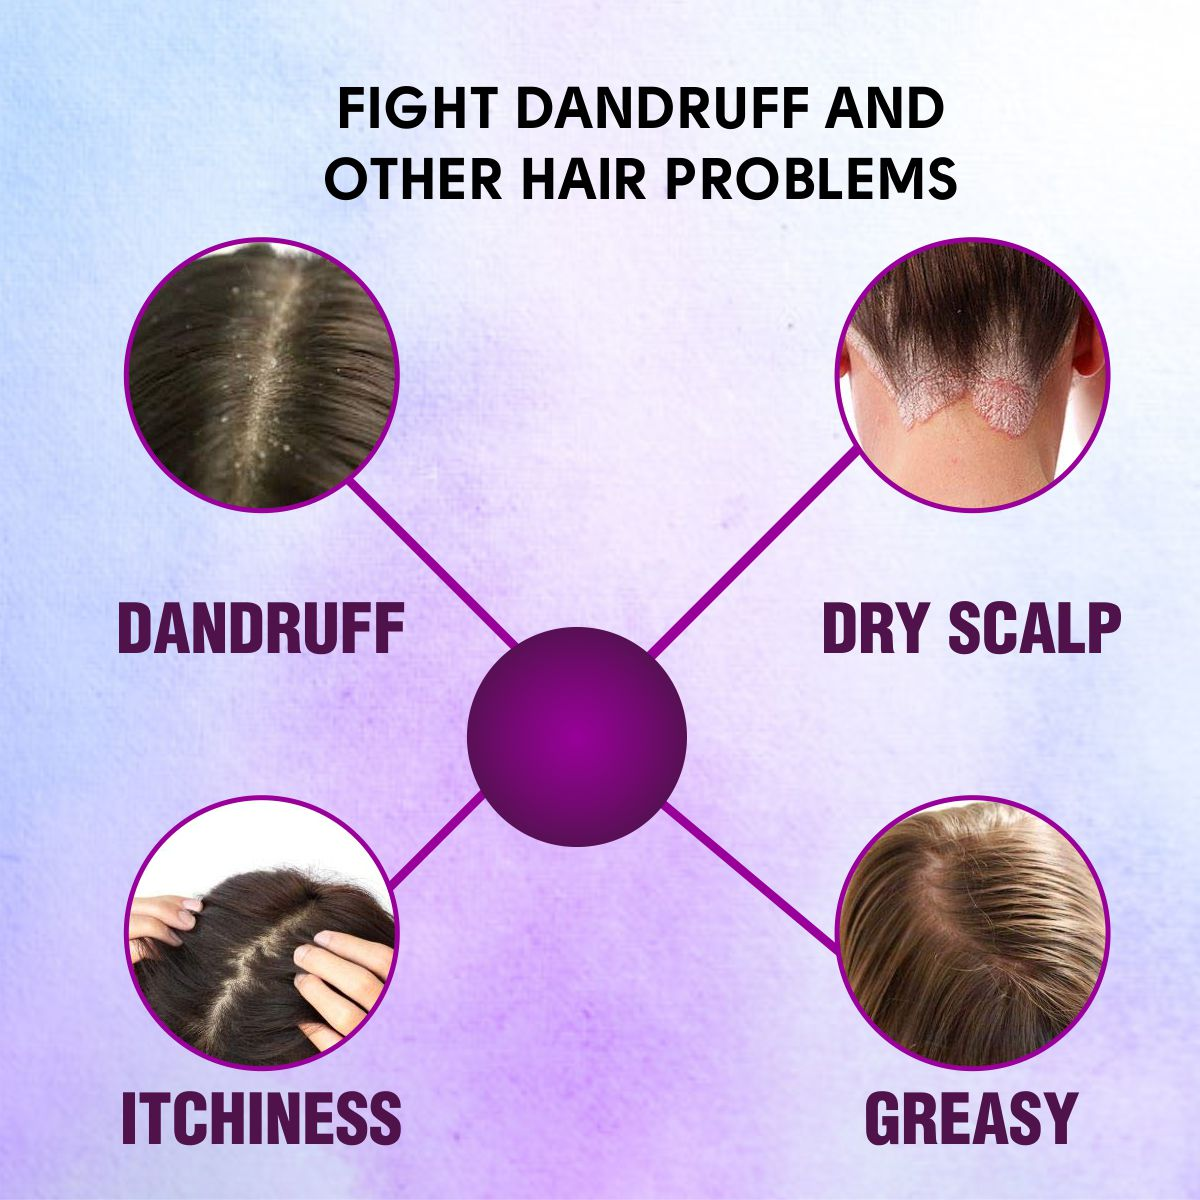 ONION OIL FIGHT DANDRUFF AND OTHER HAIR PROBLEMS